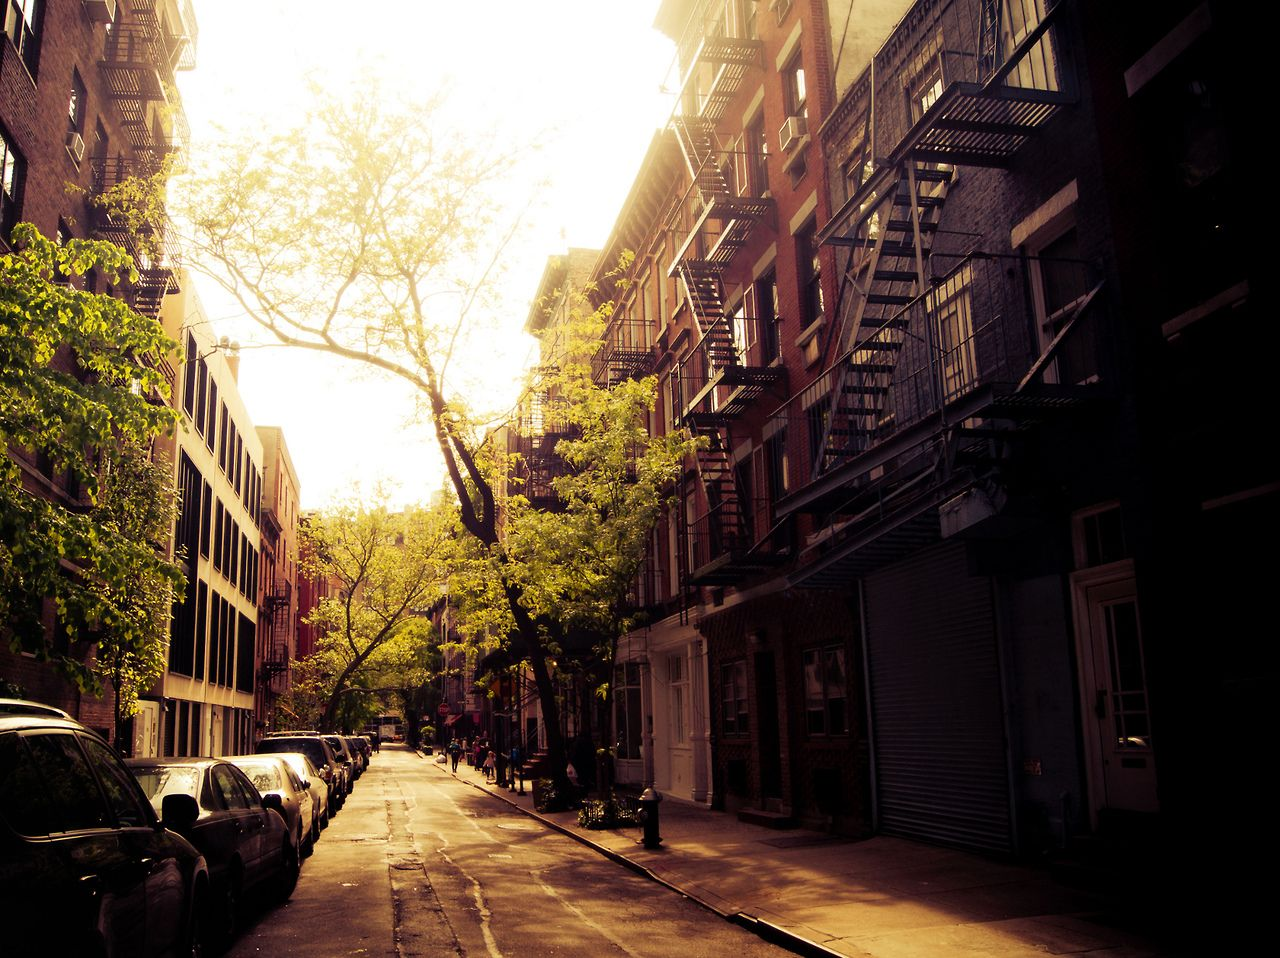 New York City - Greenwich Village: Take a walk down a tree-lined street at sunset as the sun illuminates the fire escapes and buildings.